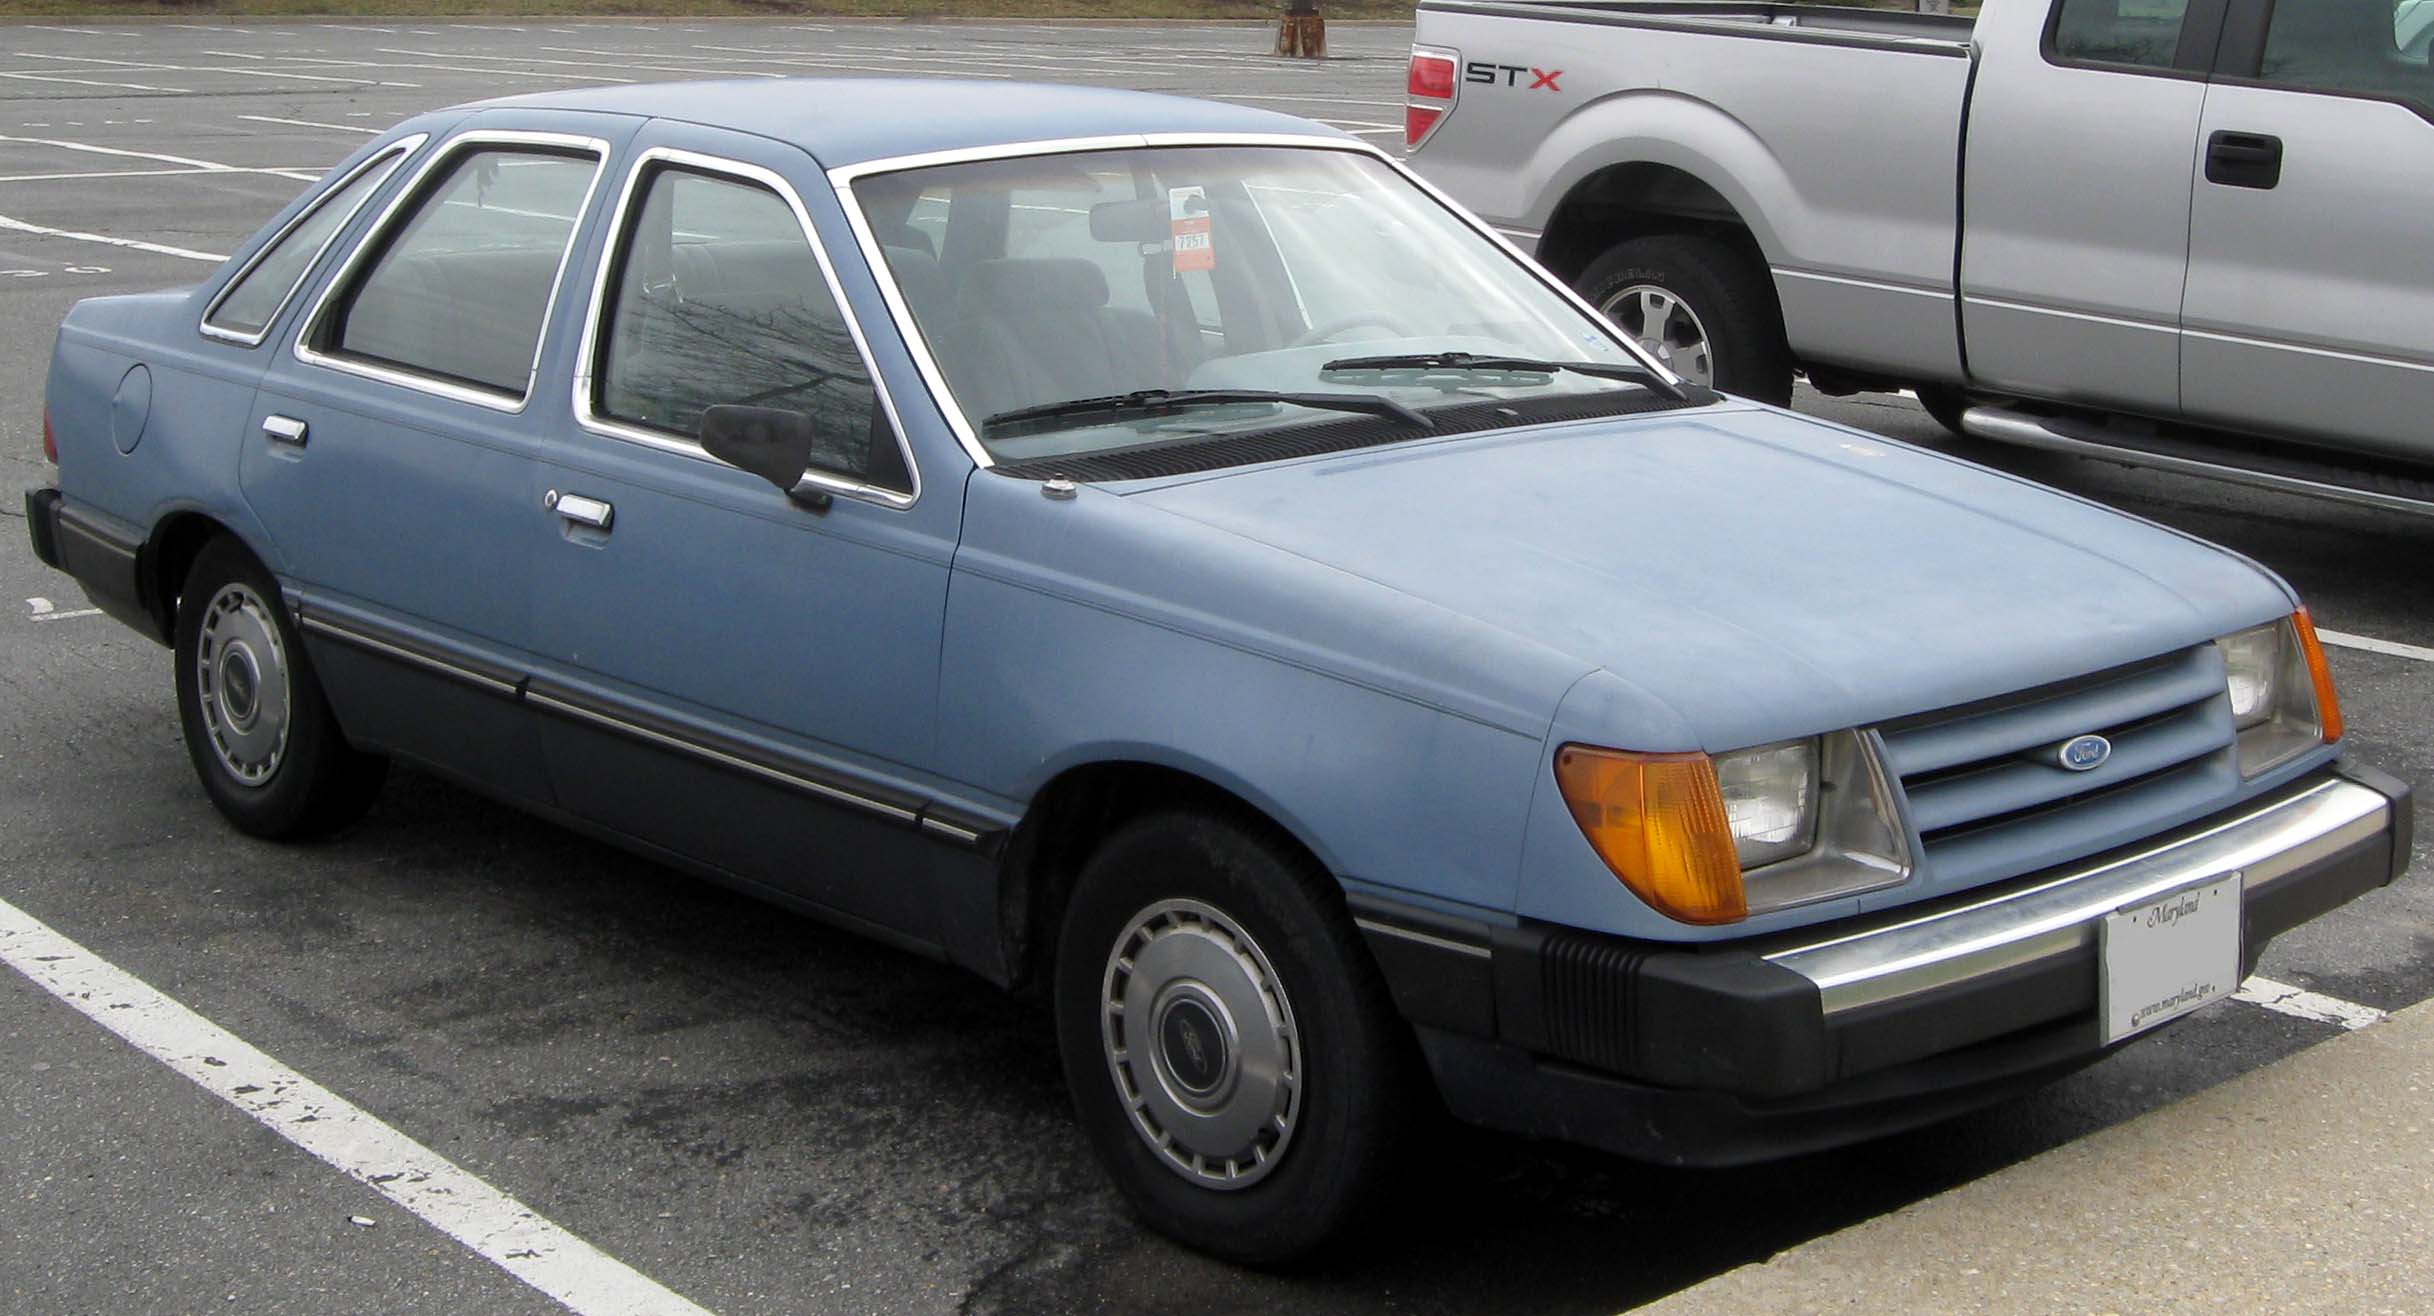 File:1984-1985 Ford Tempo sedan -- 03-09-2011.jpg - Wikipedia, the ...